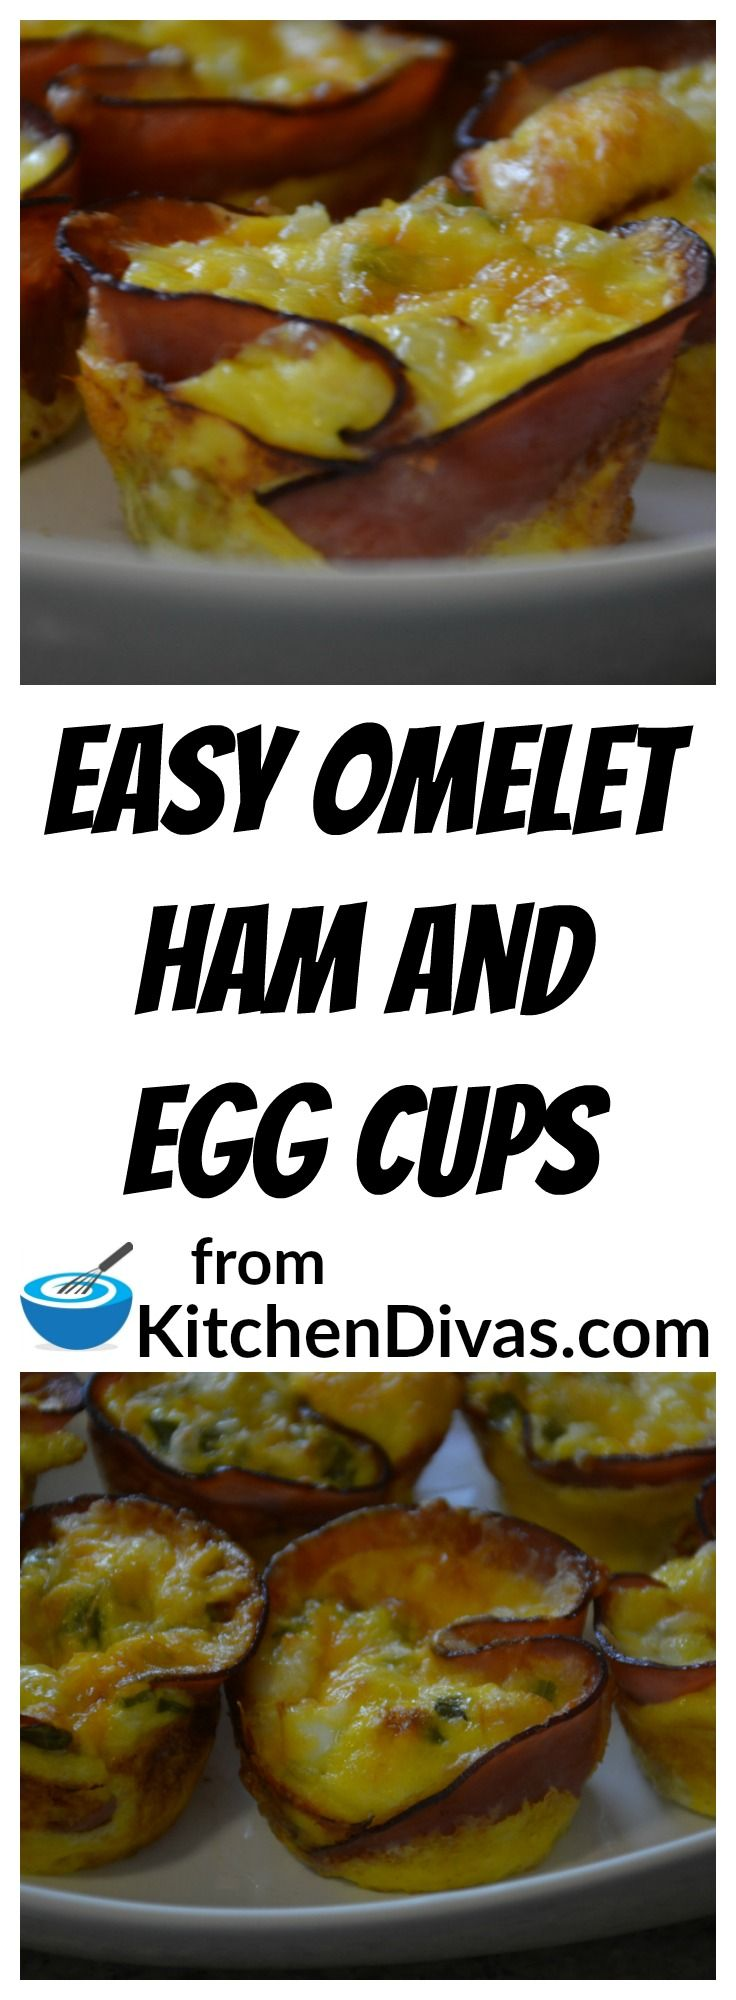 Easy Omelet Ham and Egg Cups are an easy, quick and tasty way to make breakfast or brunch for a few or many.    Perfect for any occasion!